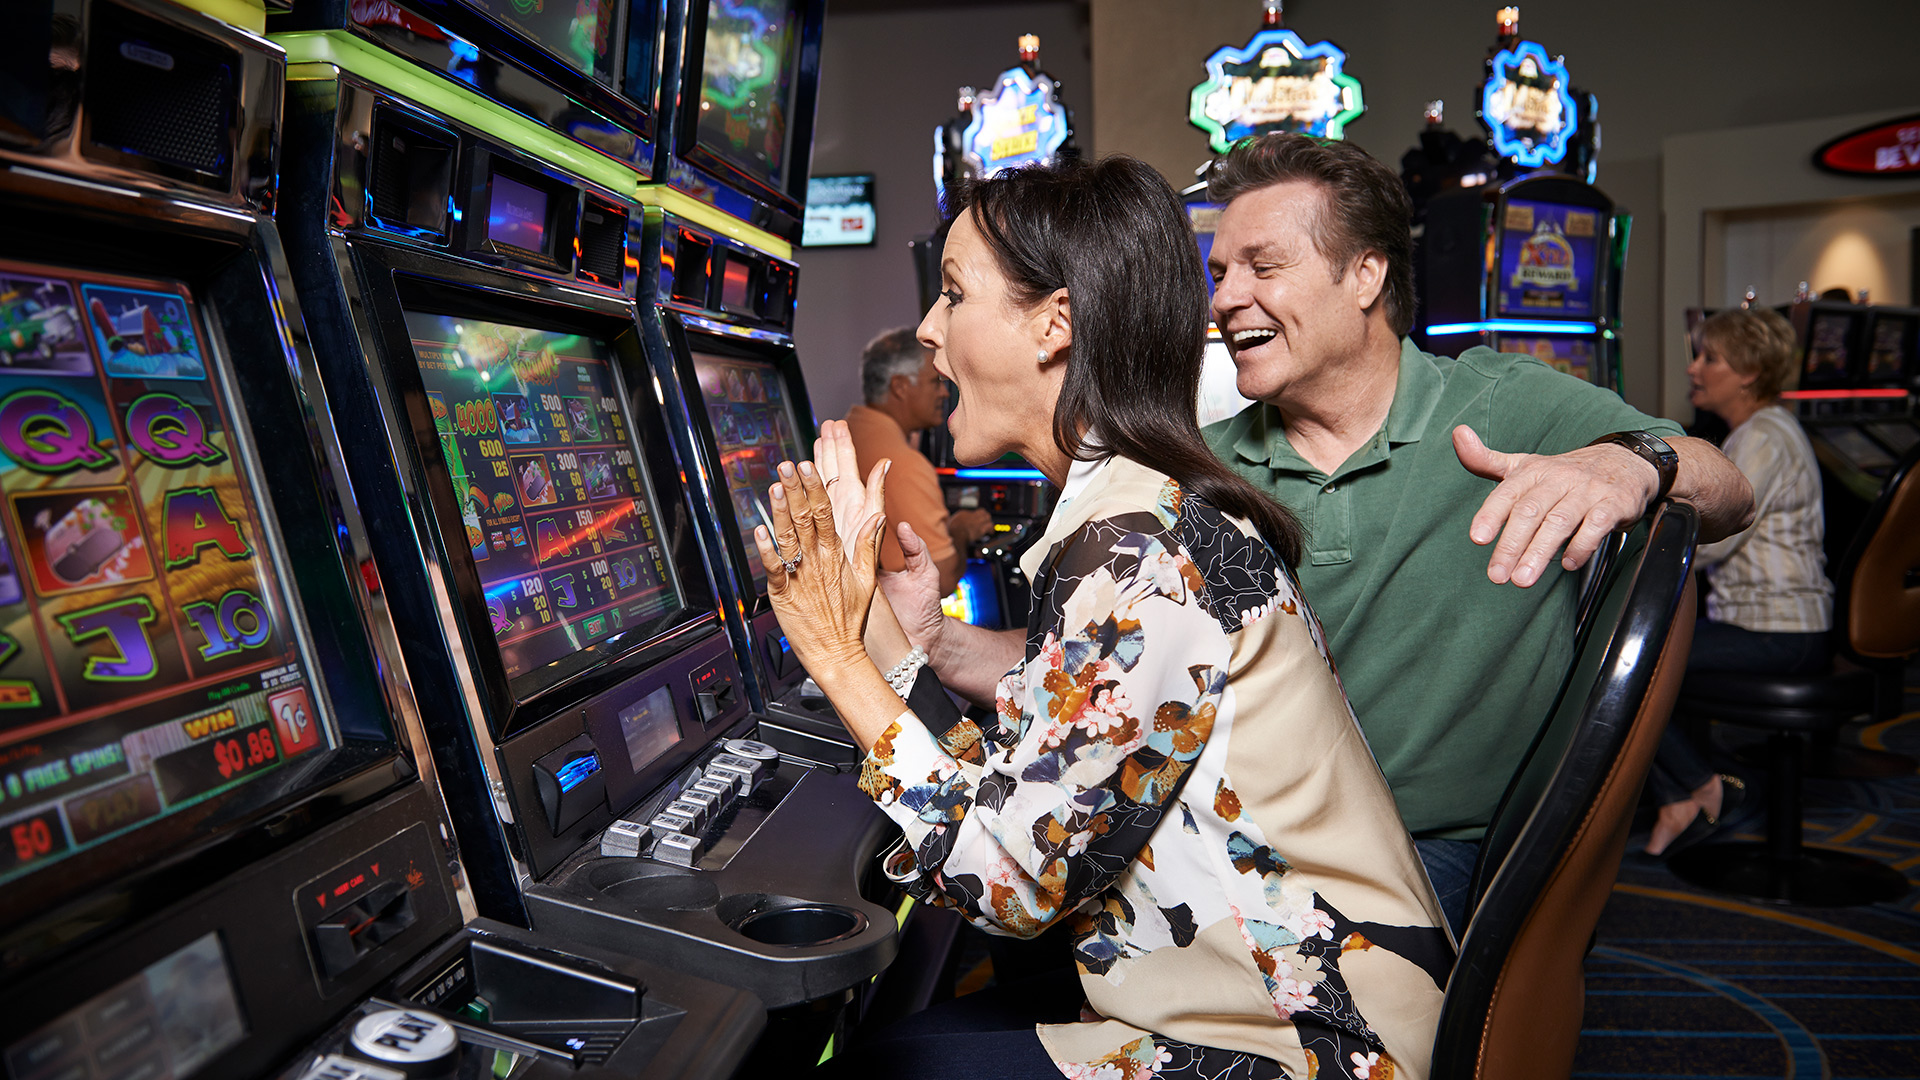 Hit the Jackpot at WinStar World Casino and Resort